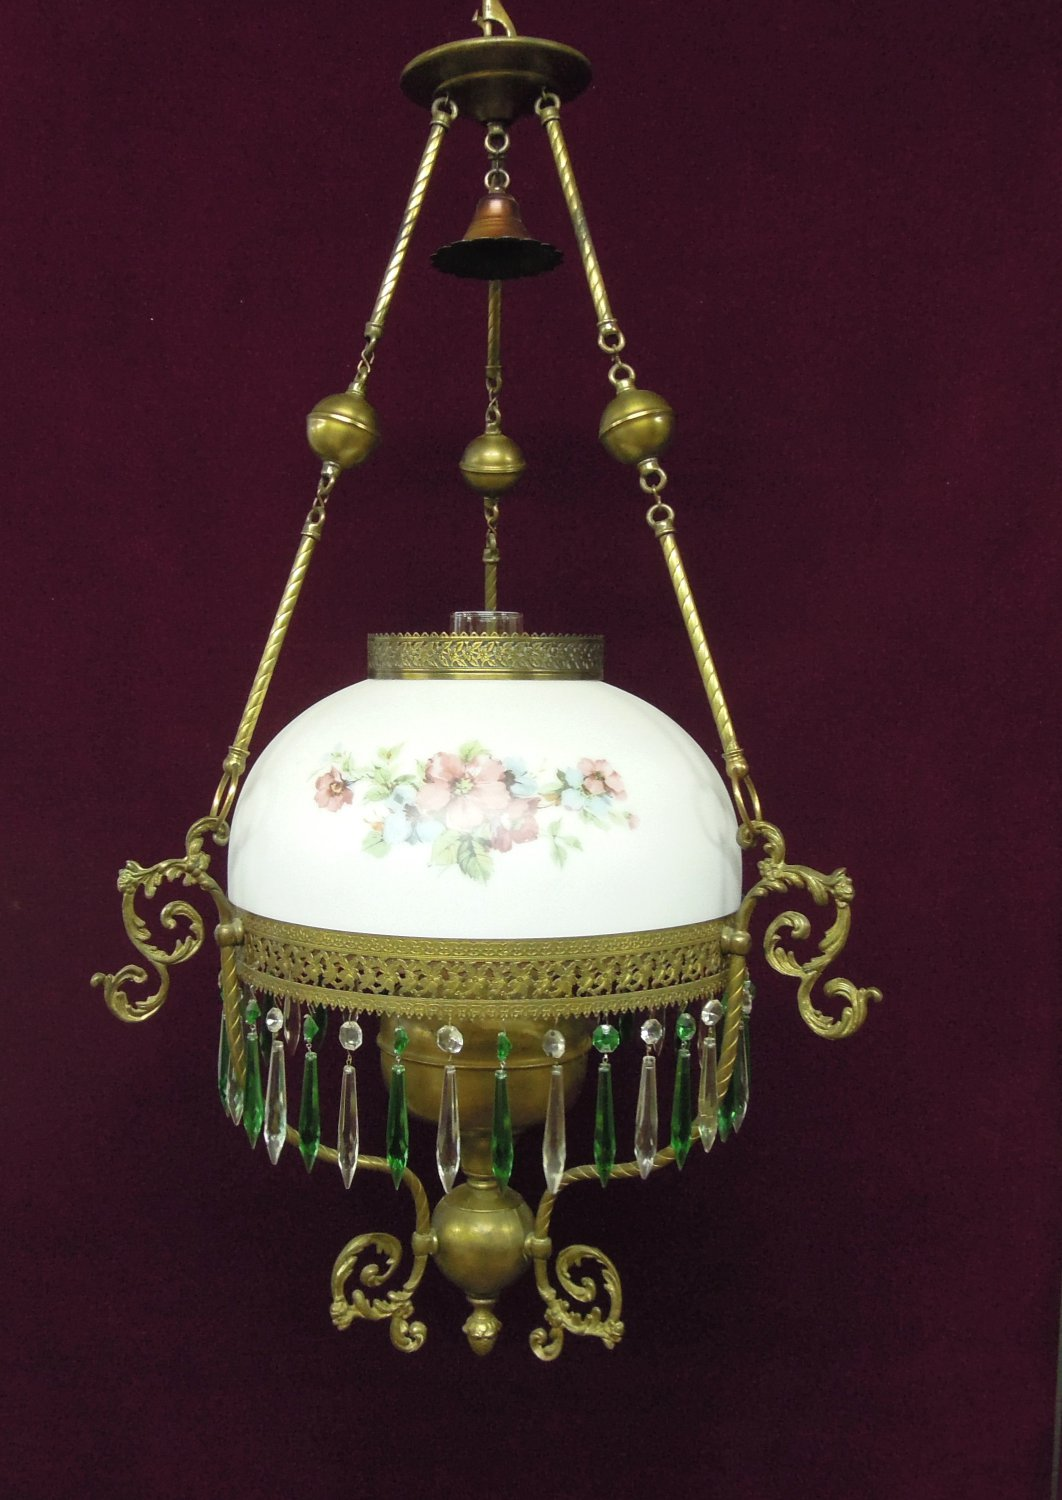 P & A Hanging Parlor Oil Lamp White